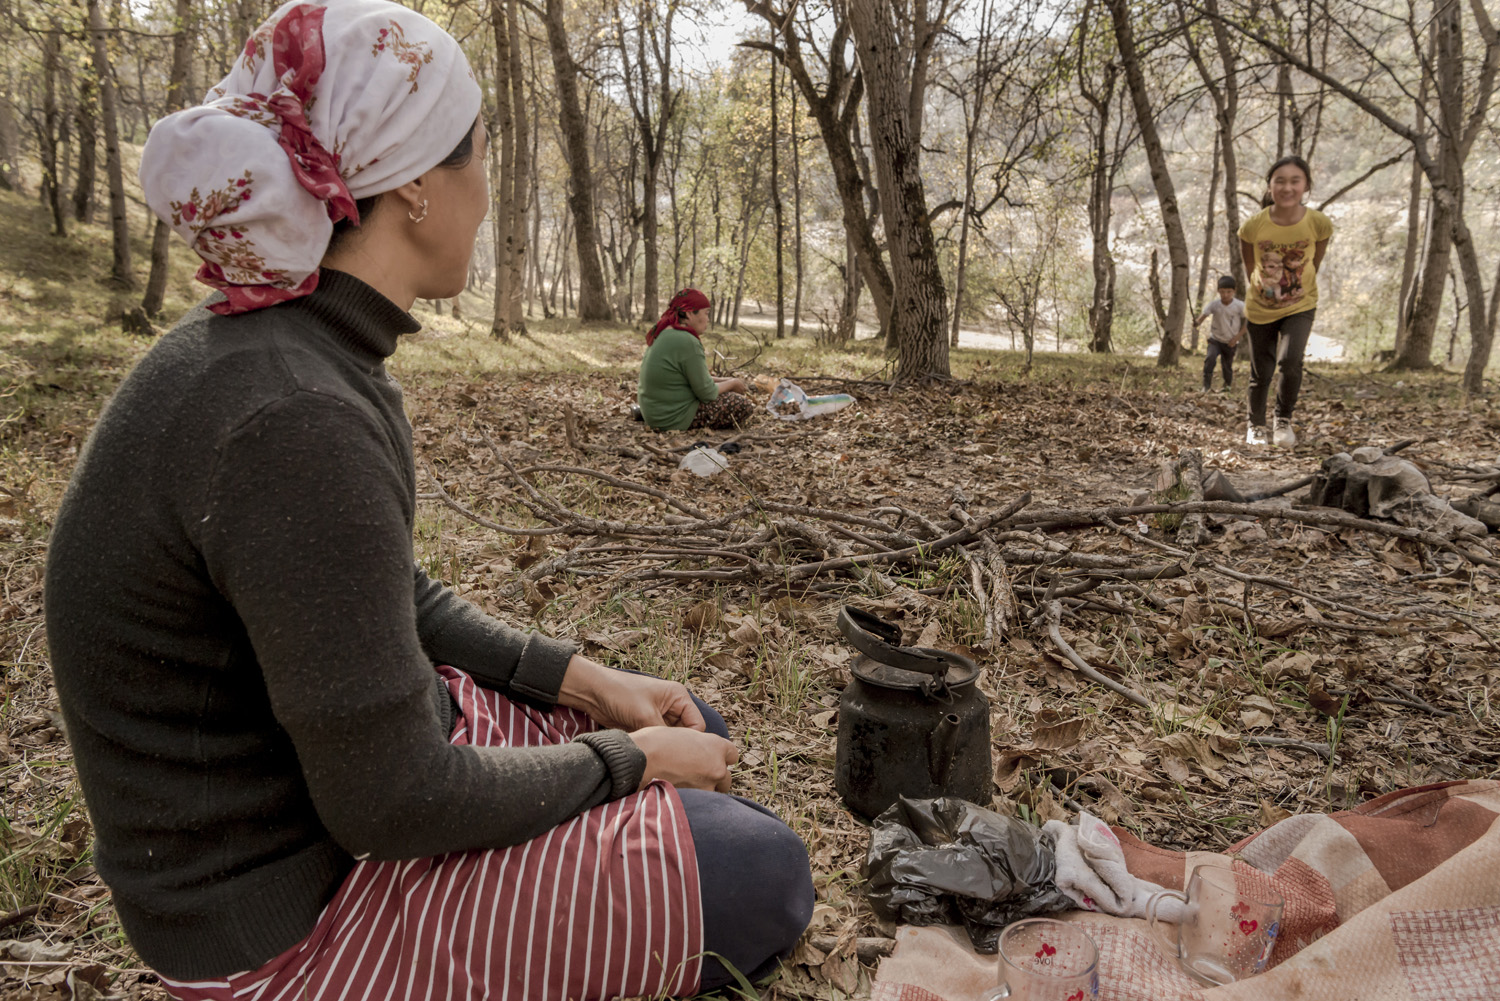 walnuts-picking-kyrgyzstan-child-arslanbob-soviet-union-russia-picnic-camping-family-mother.jpg